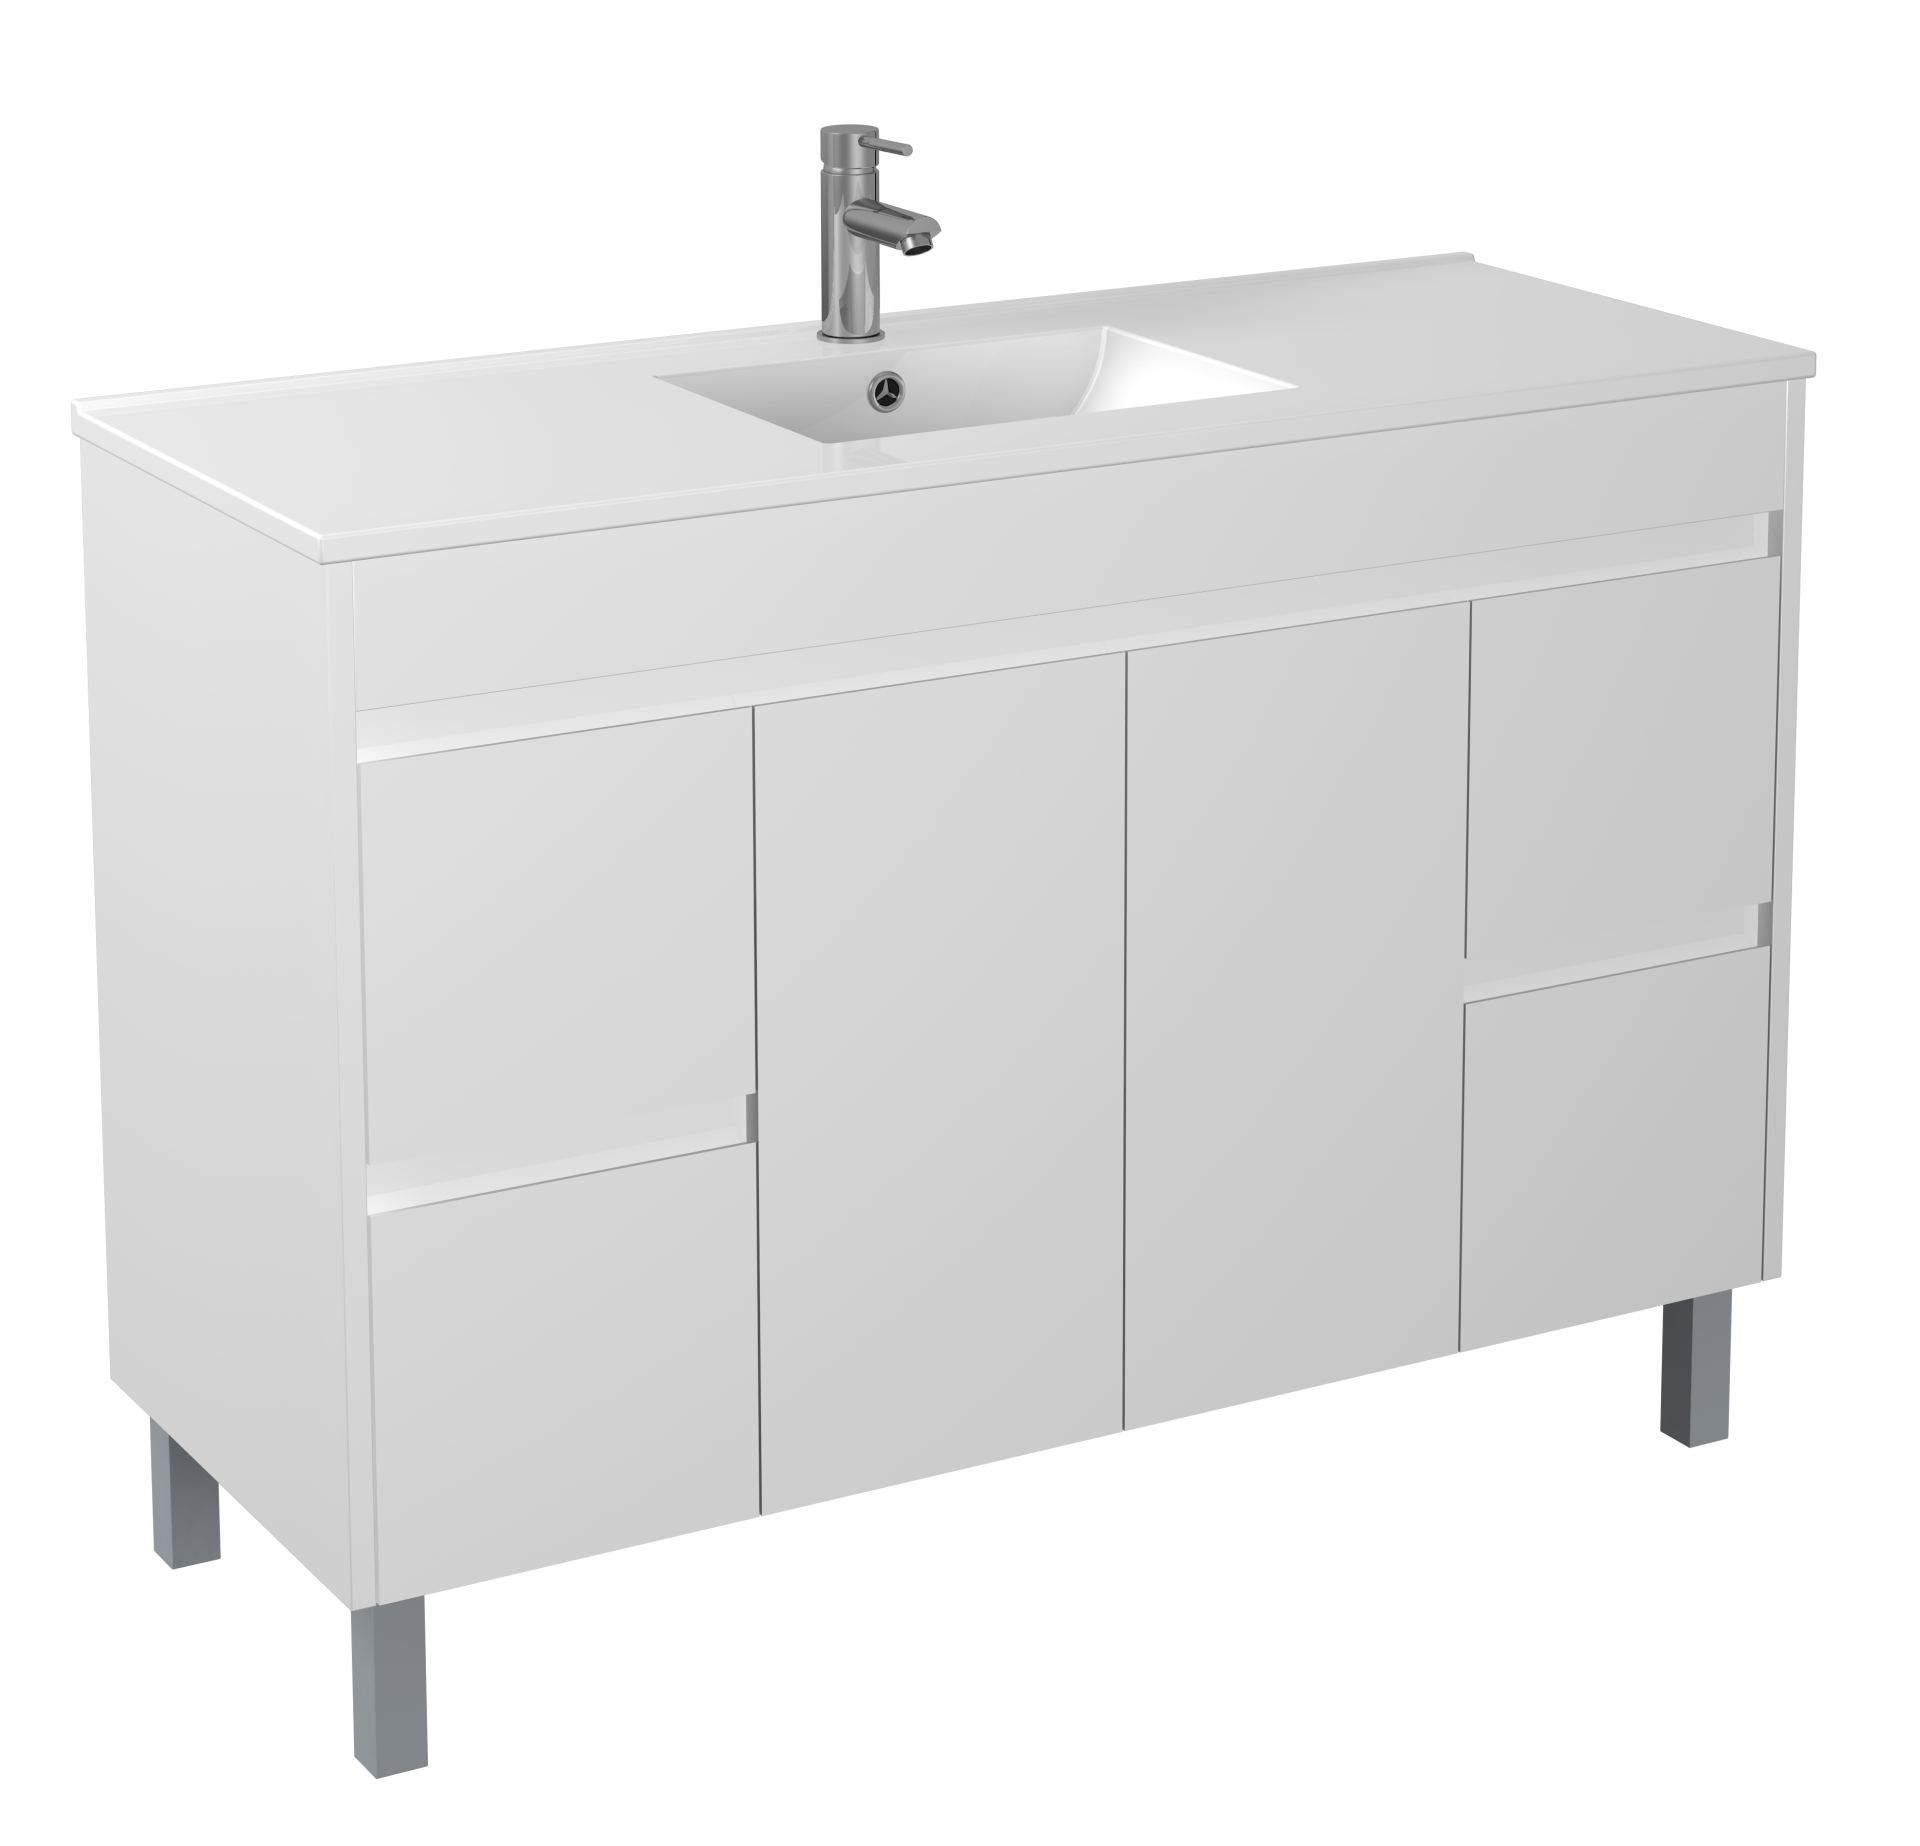 1500mm PVC Waterproof Vanity on Legs